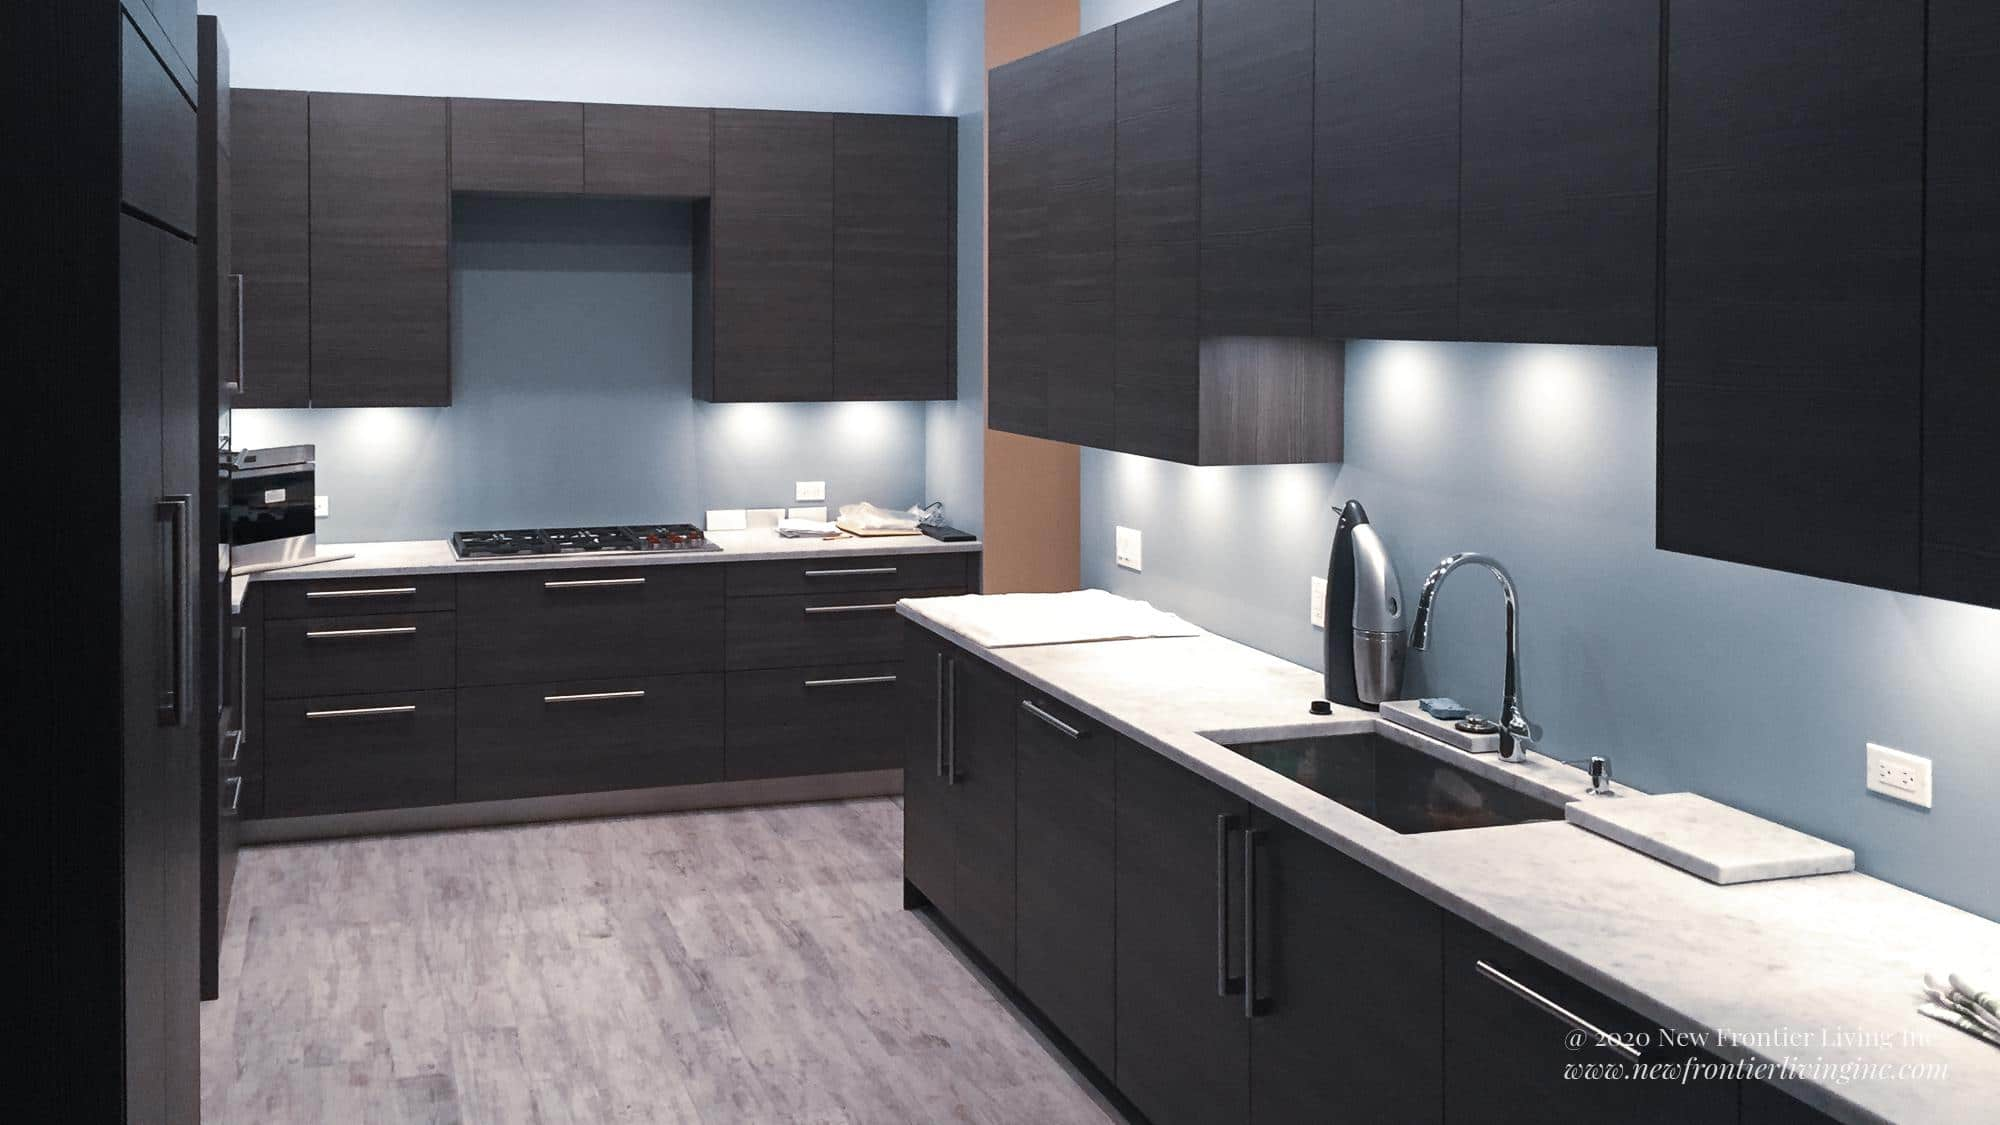 Black kitchen cabinetry and white countertop and light gray floor